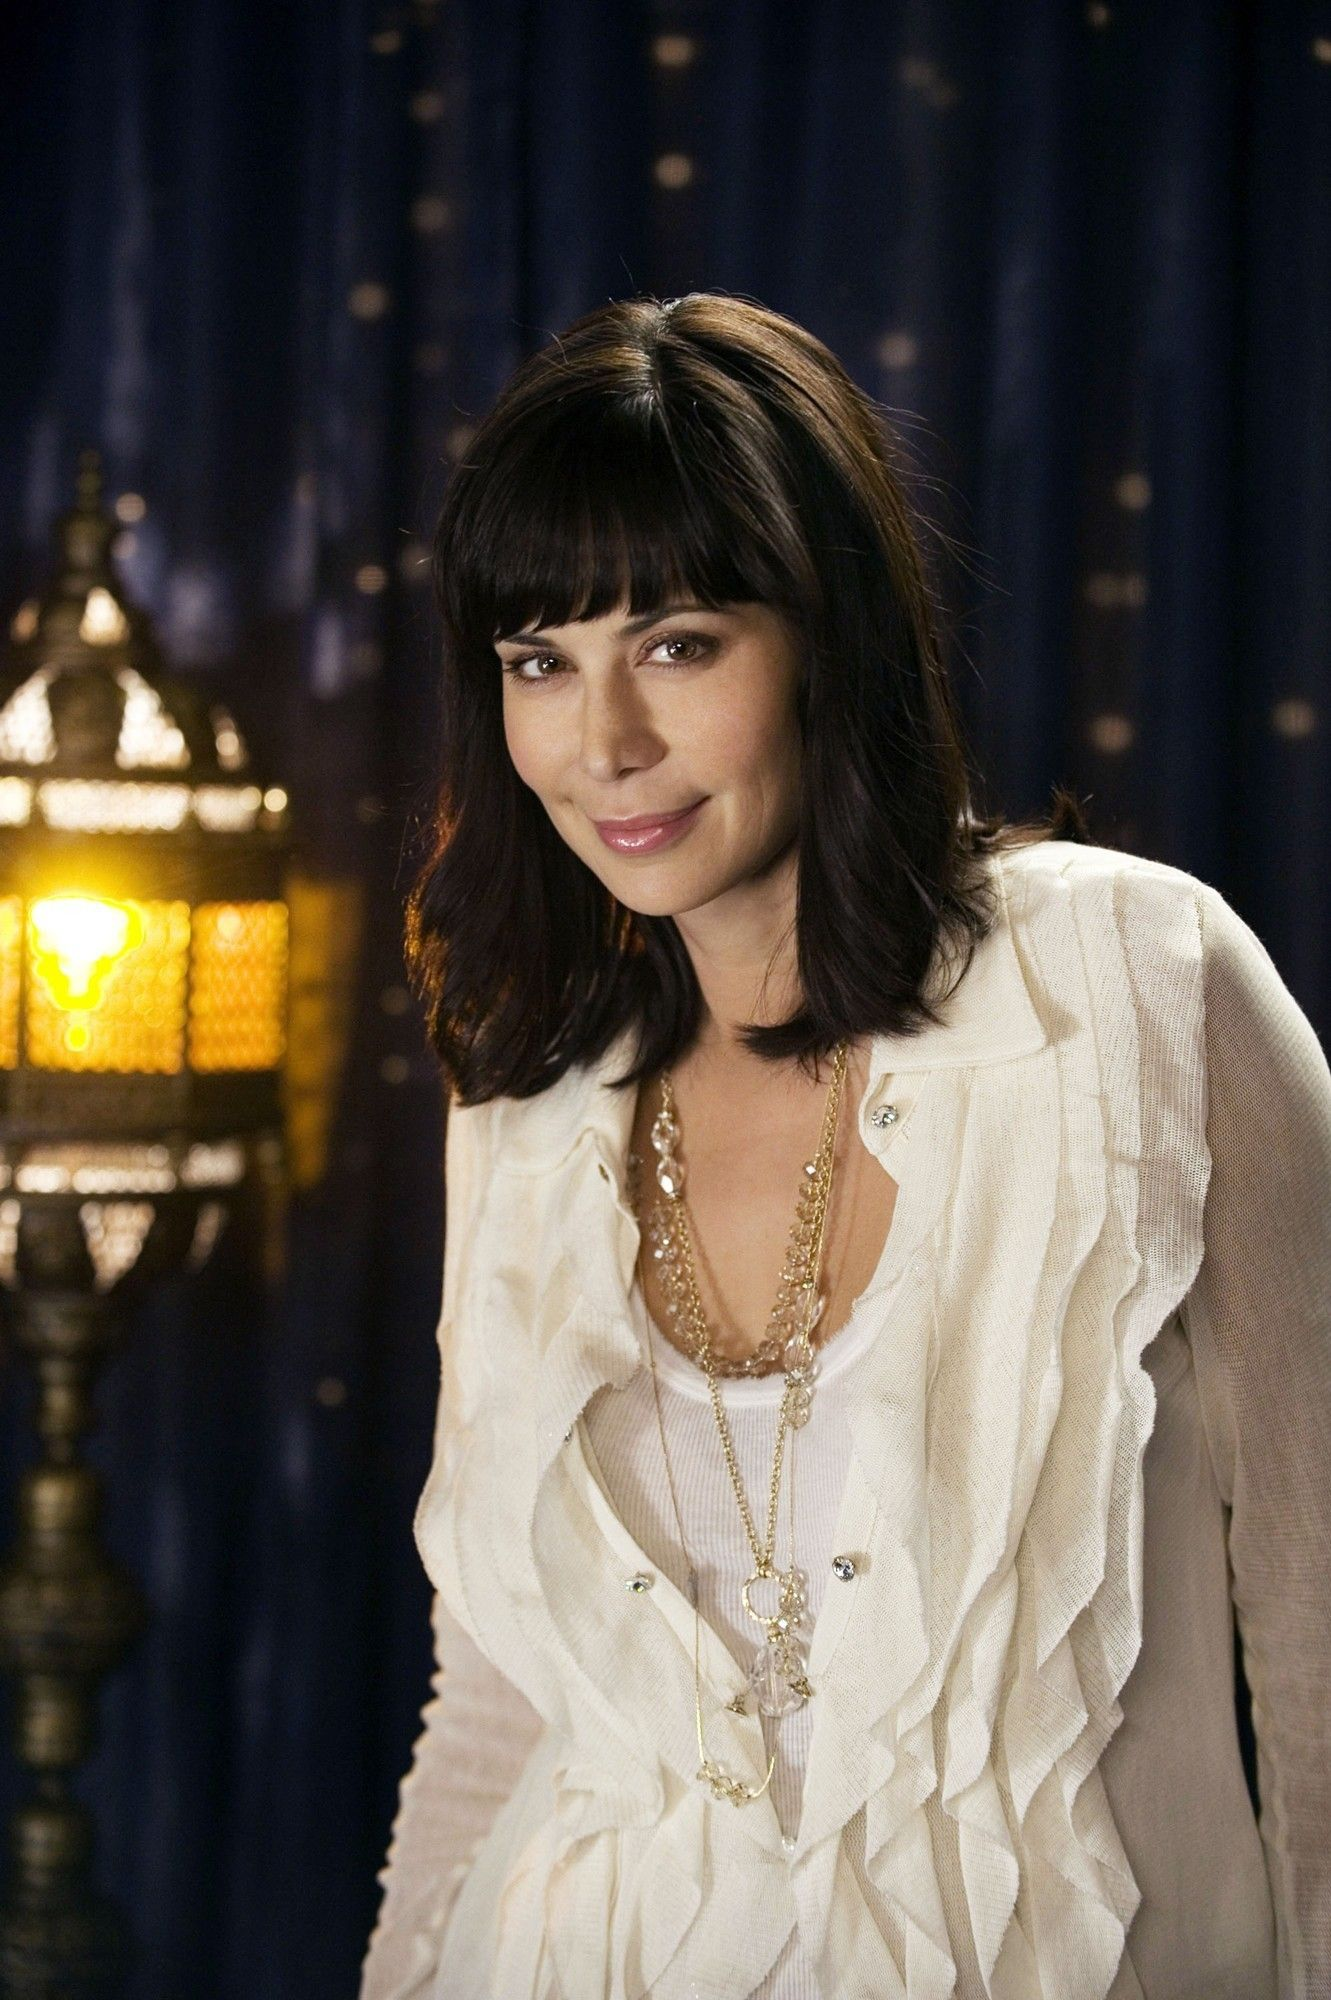 the good witch | ... as Cassandra Nightingale in Hallmark's The Good Witch's Family (2011